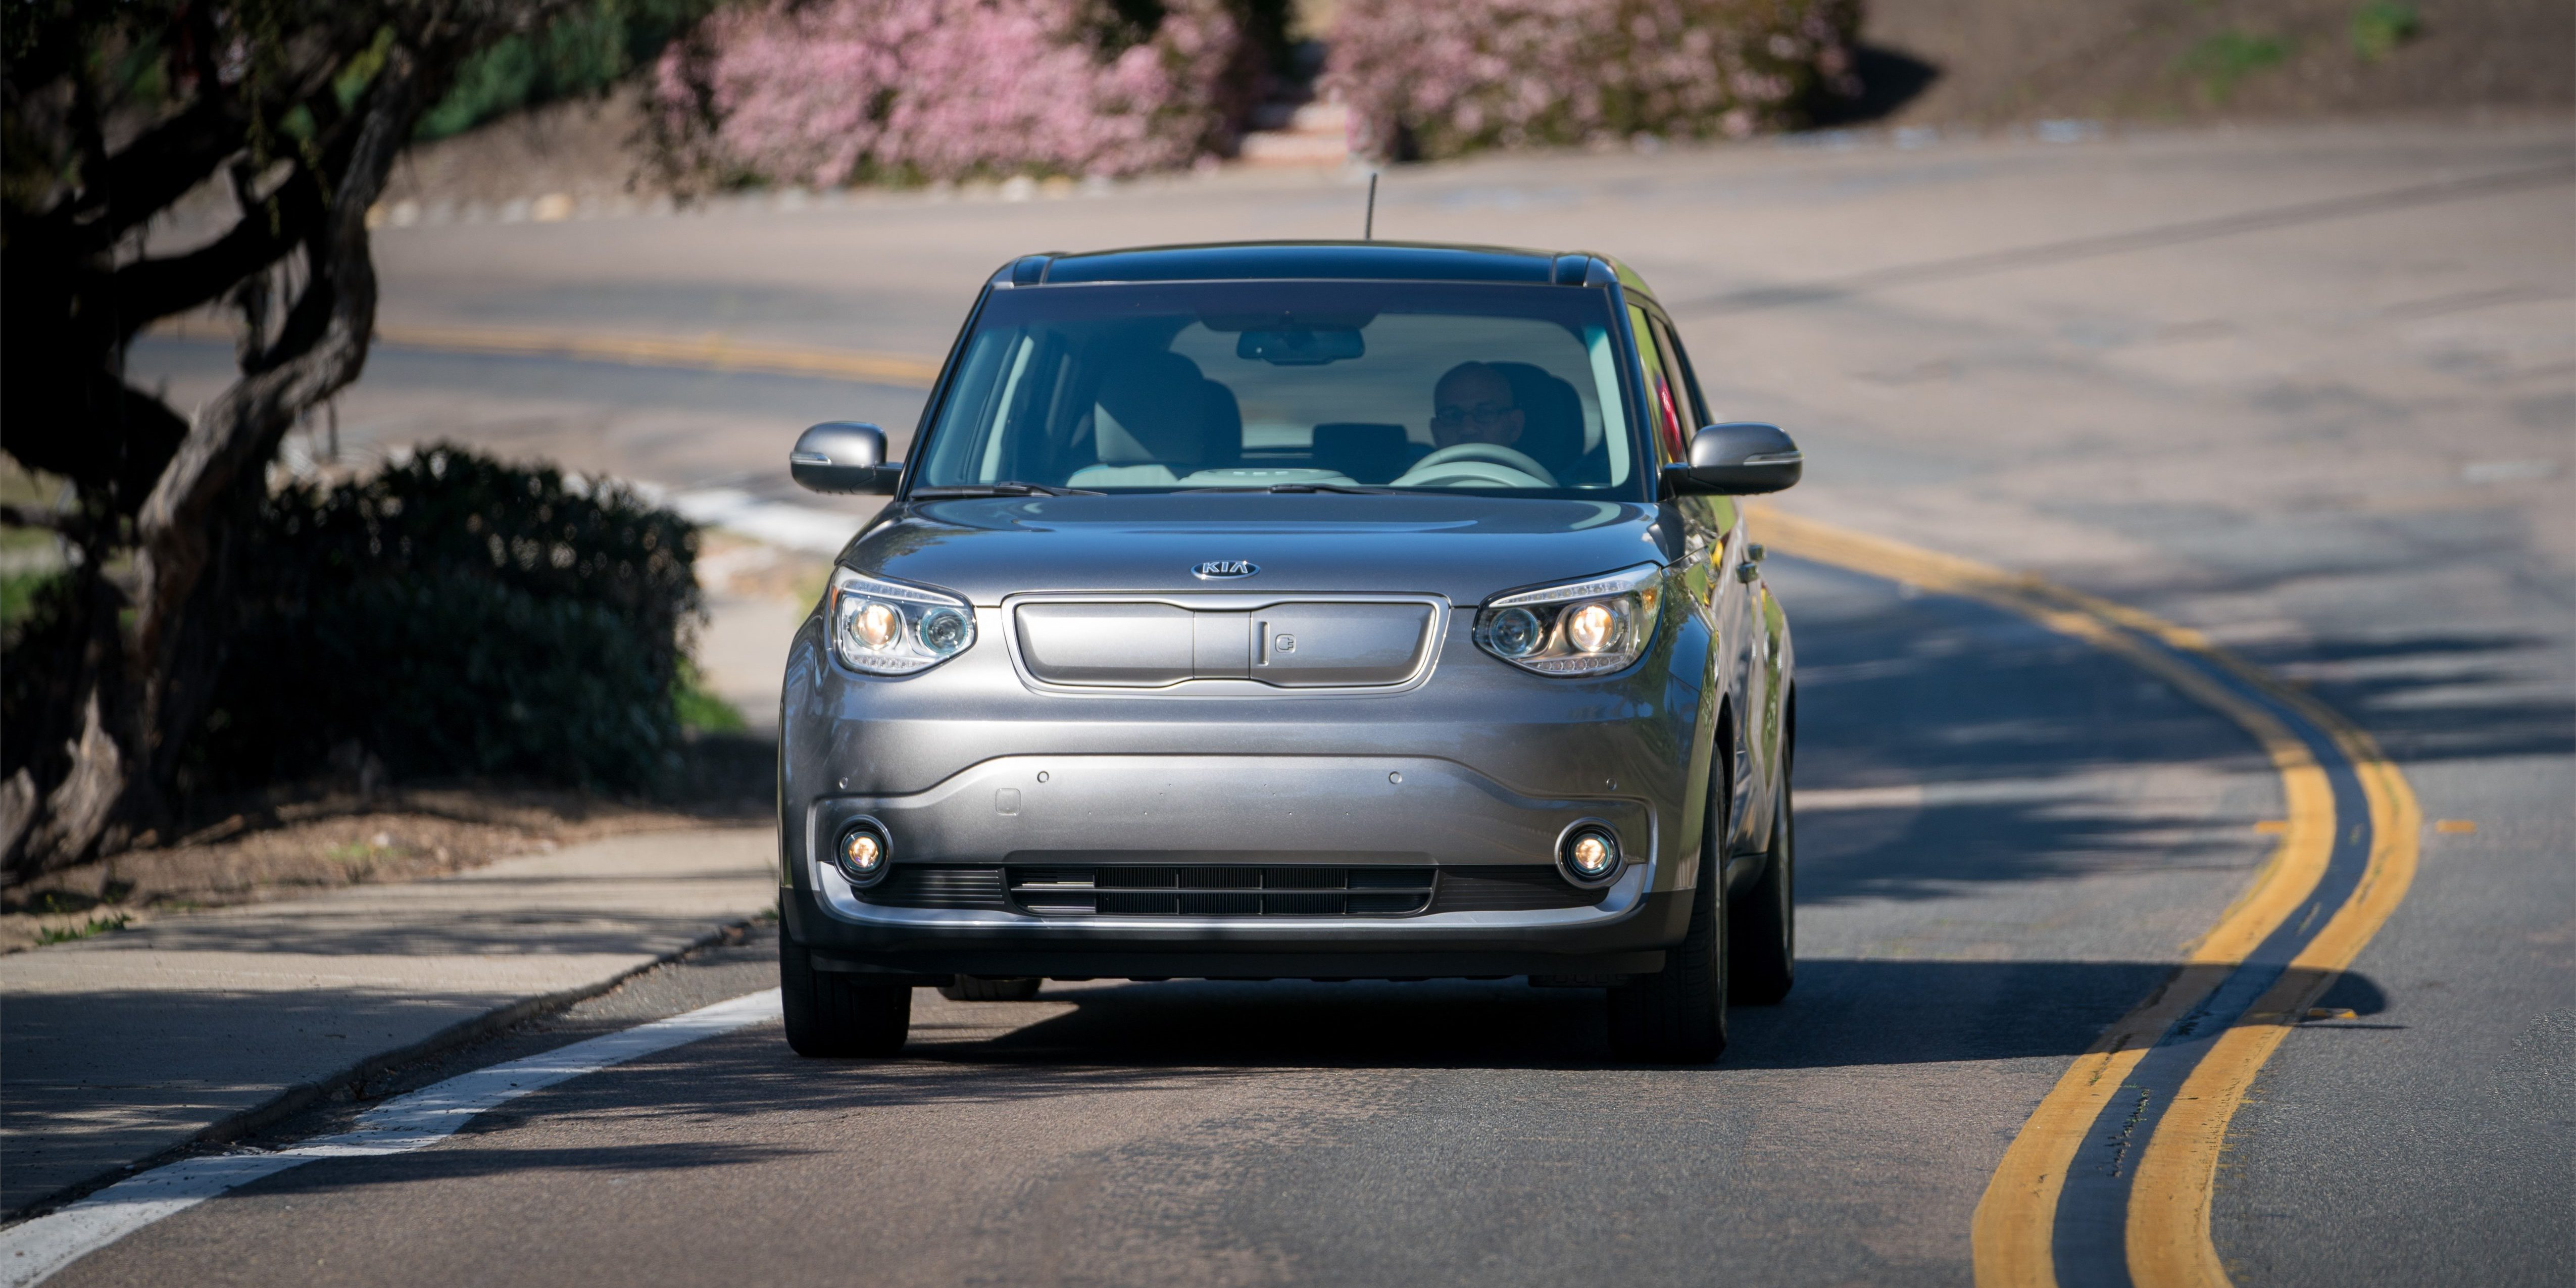 Kia Developed A Wireless Charging System For The Soul Ev Electric